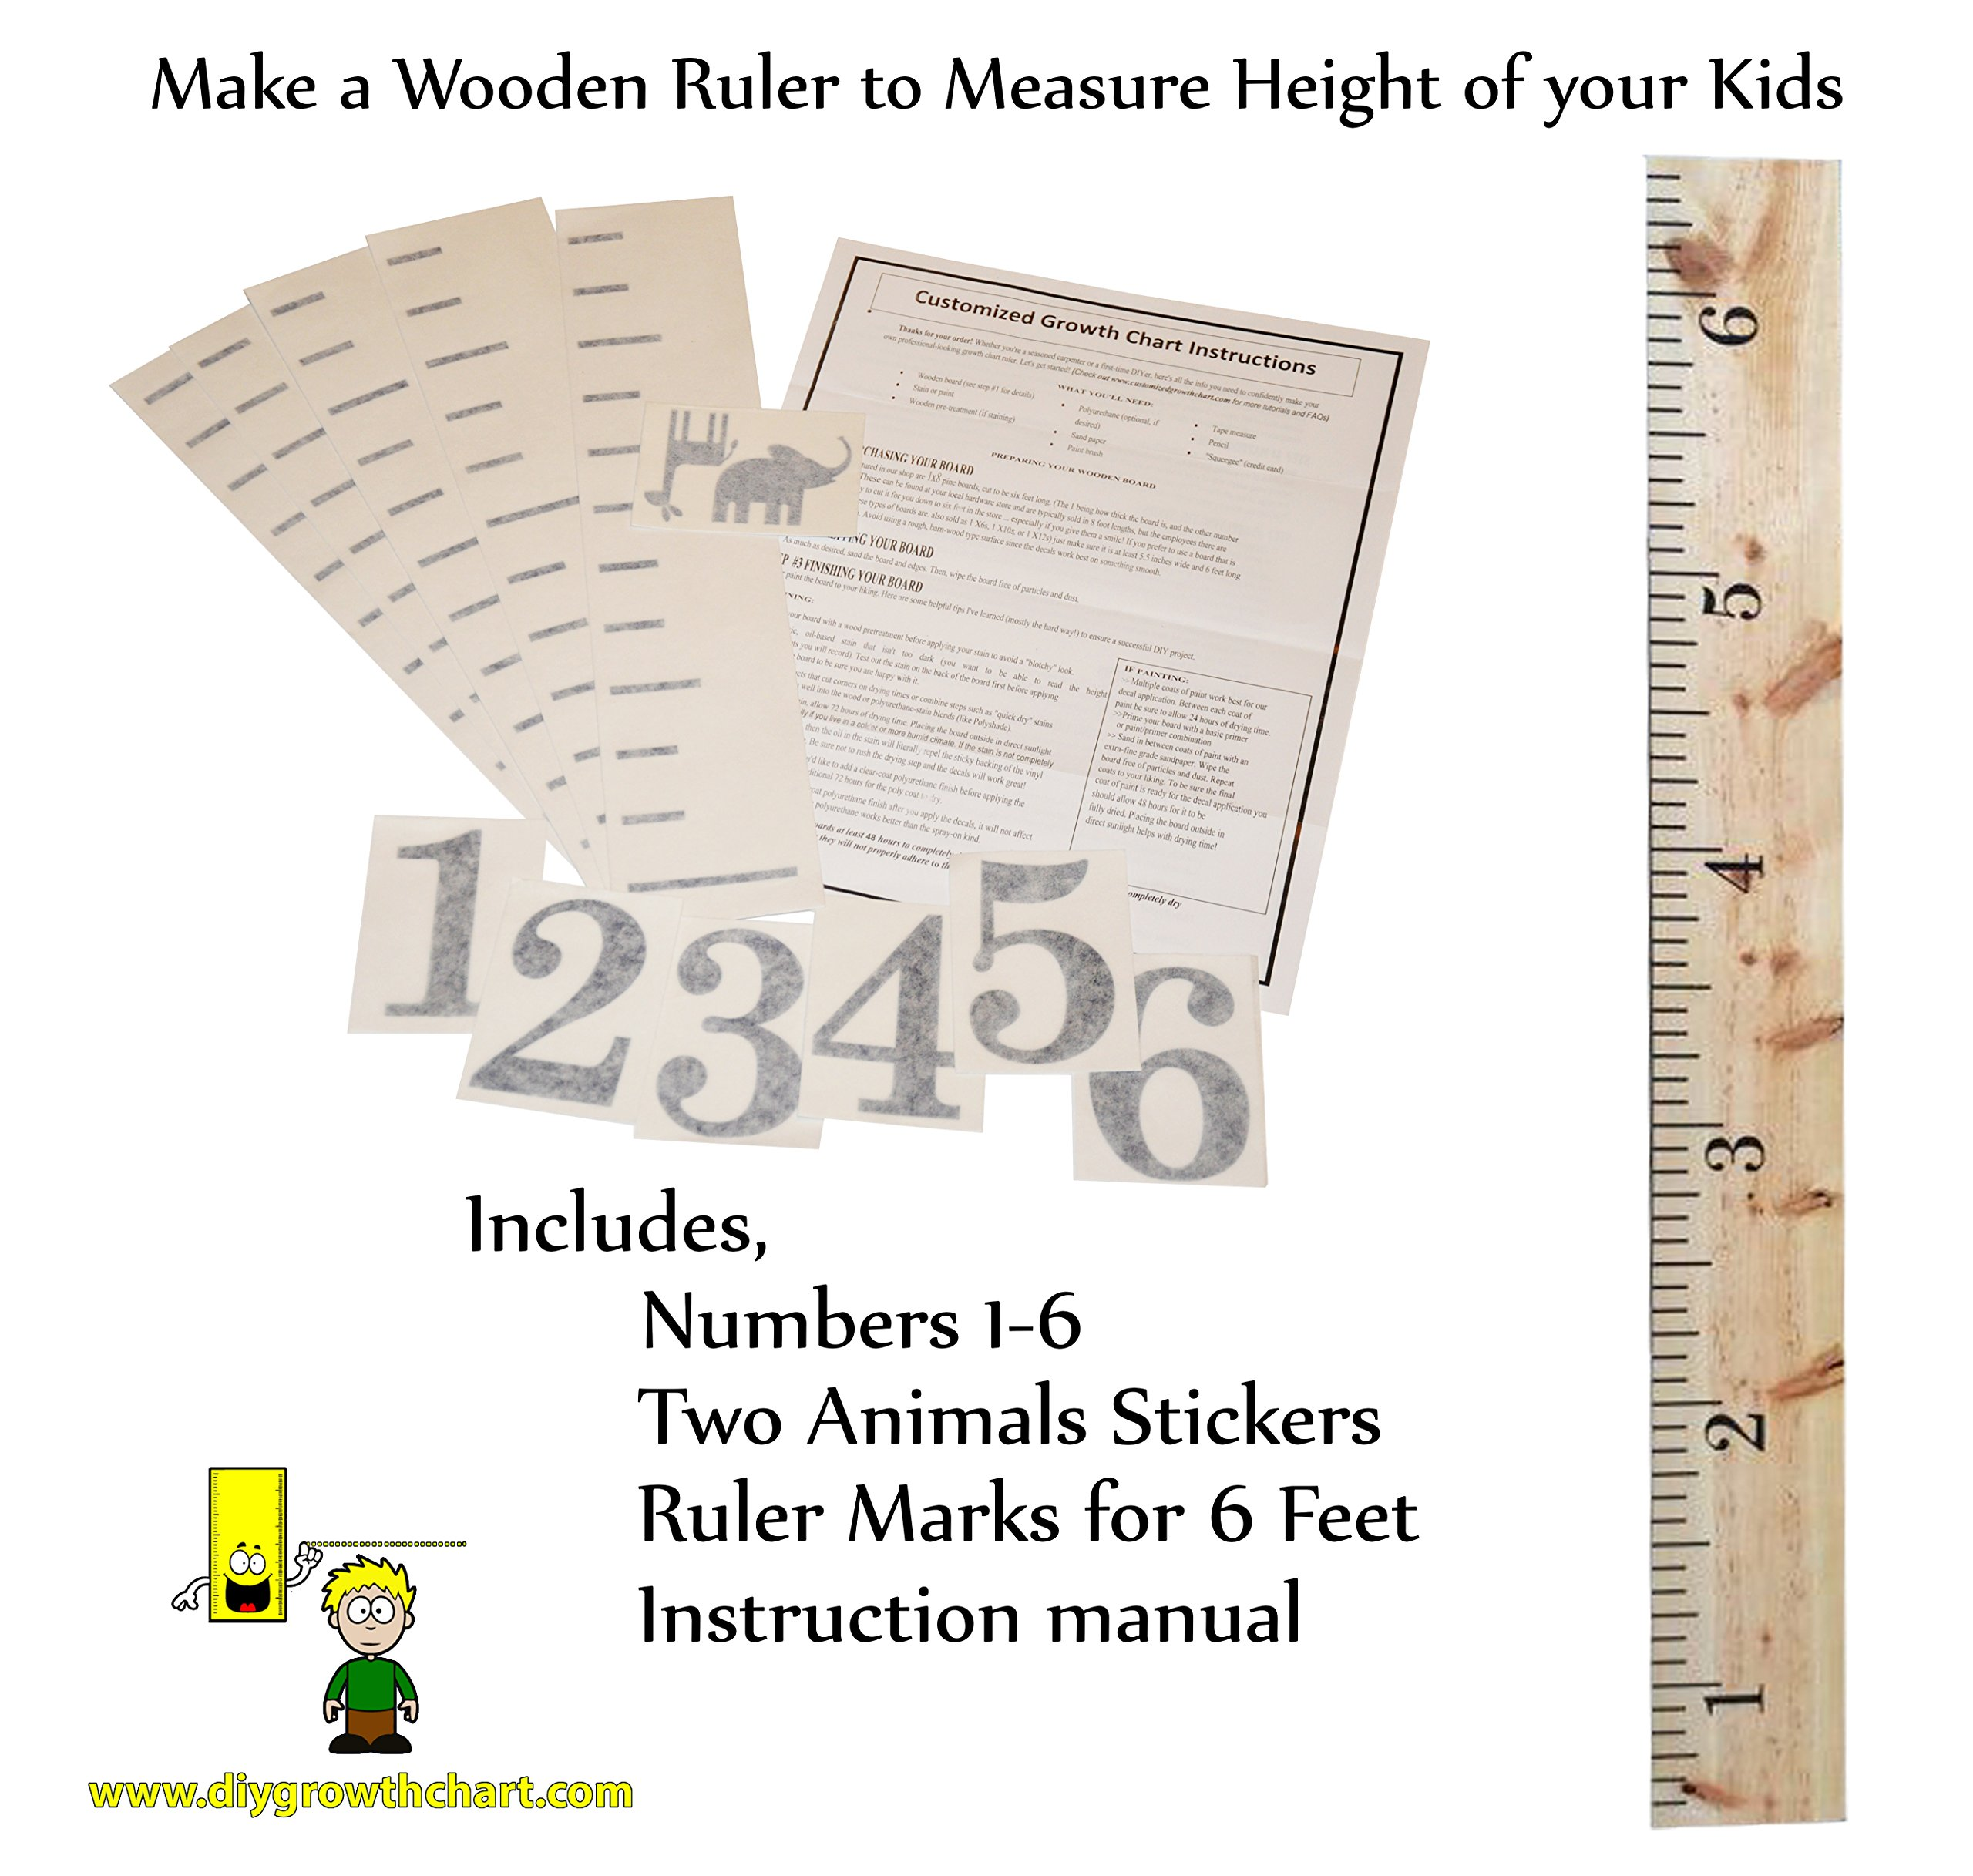 81g6xmsph lg personalized diy growth chart ruler decal kit for wall or do it yourself project for custom large wooden ruler to measure children growing geenschuldenfo Choice Image